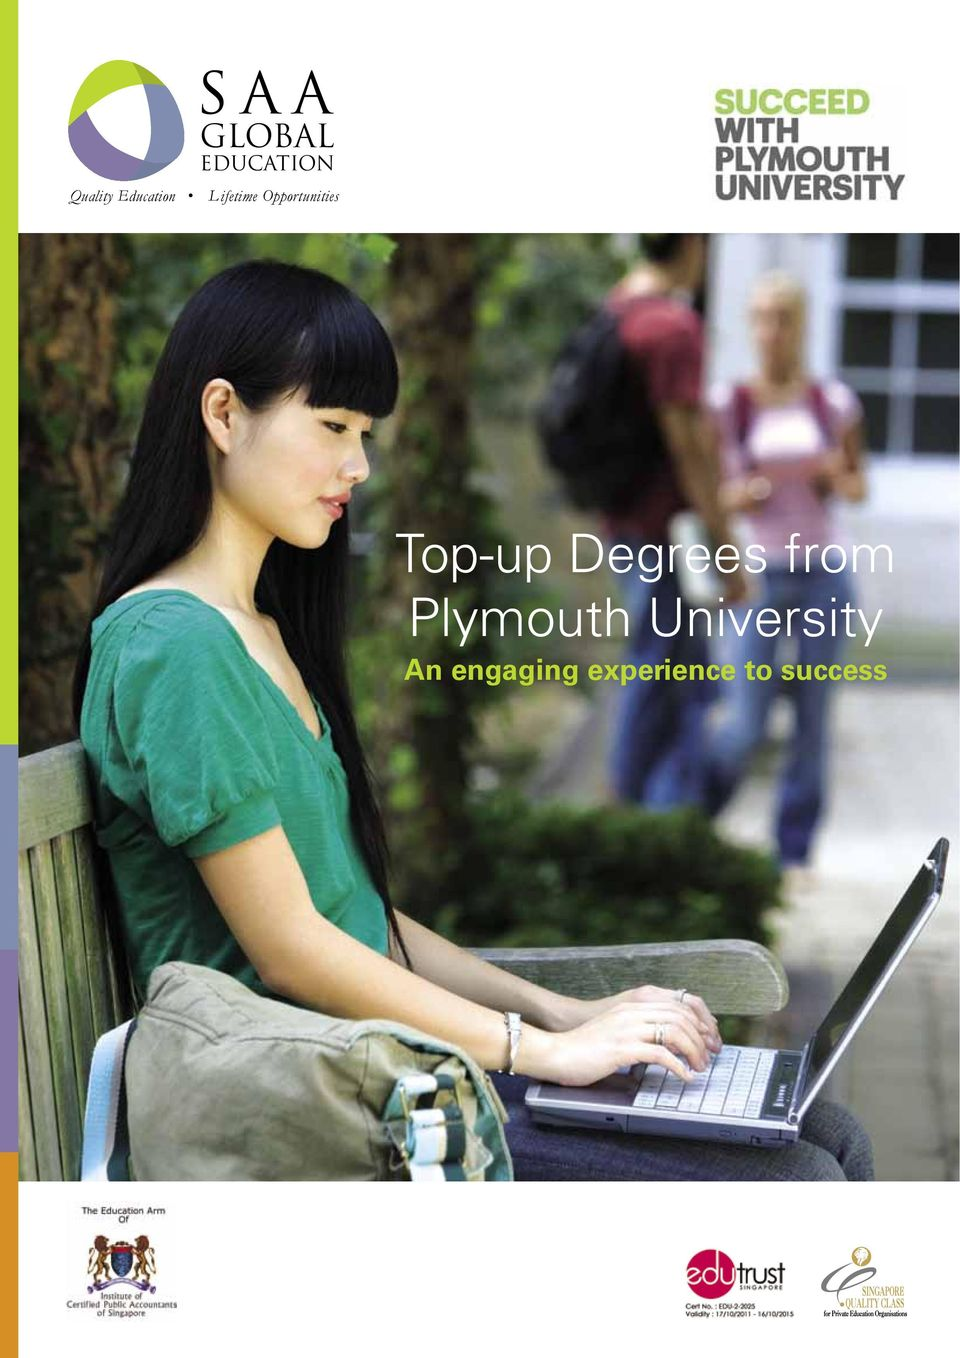 Top-up Degrees from Plymouth